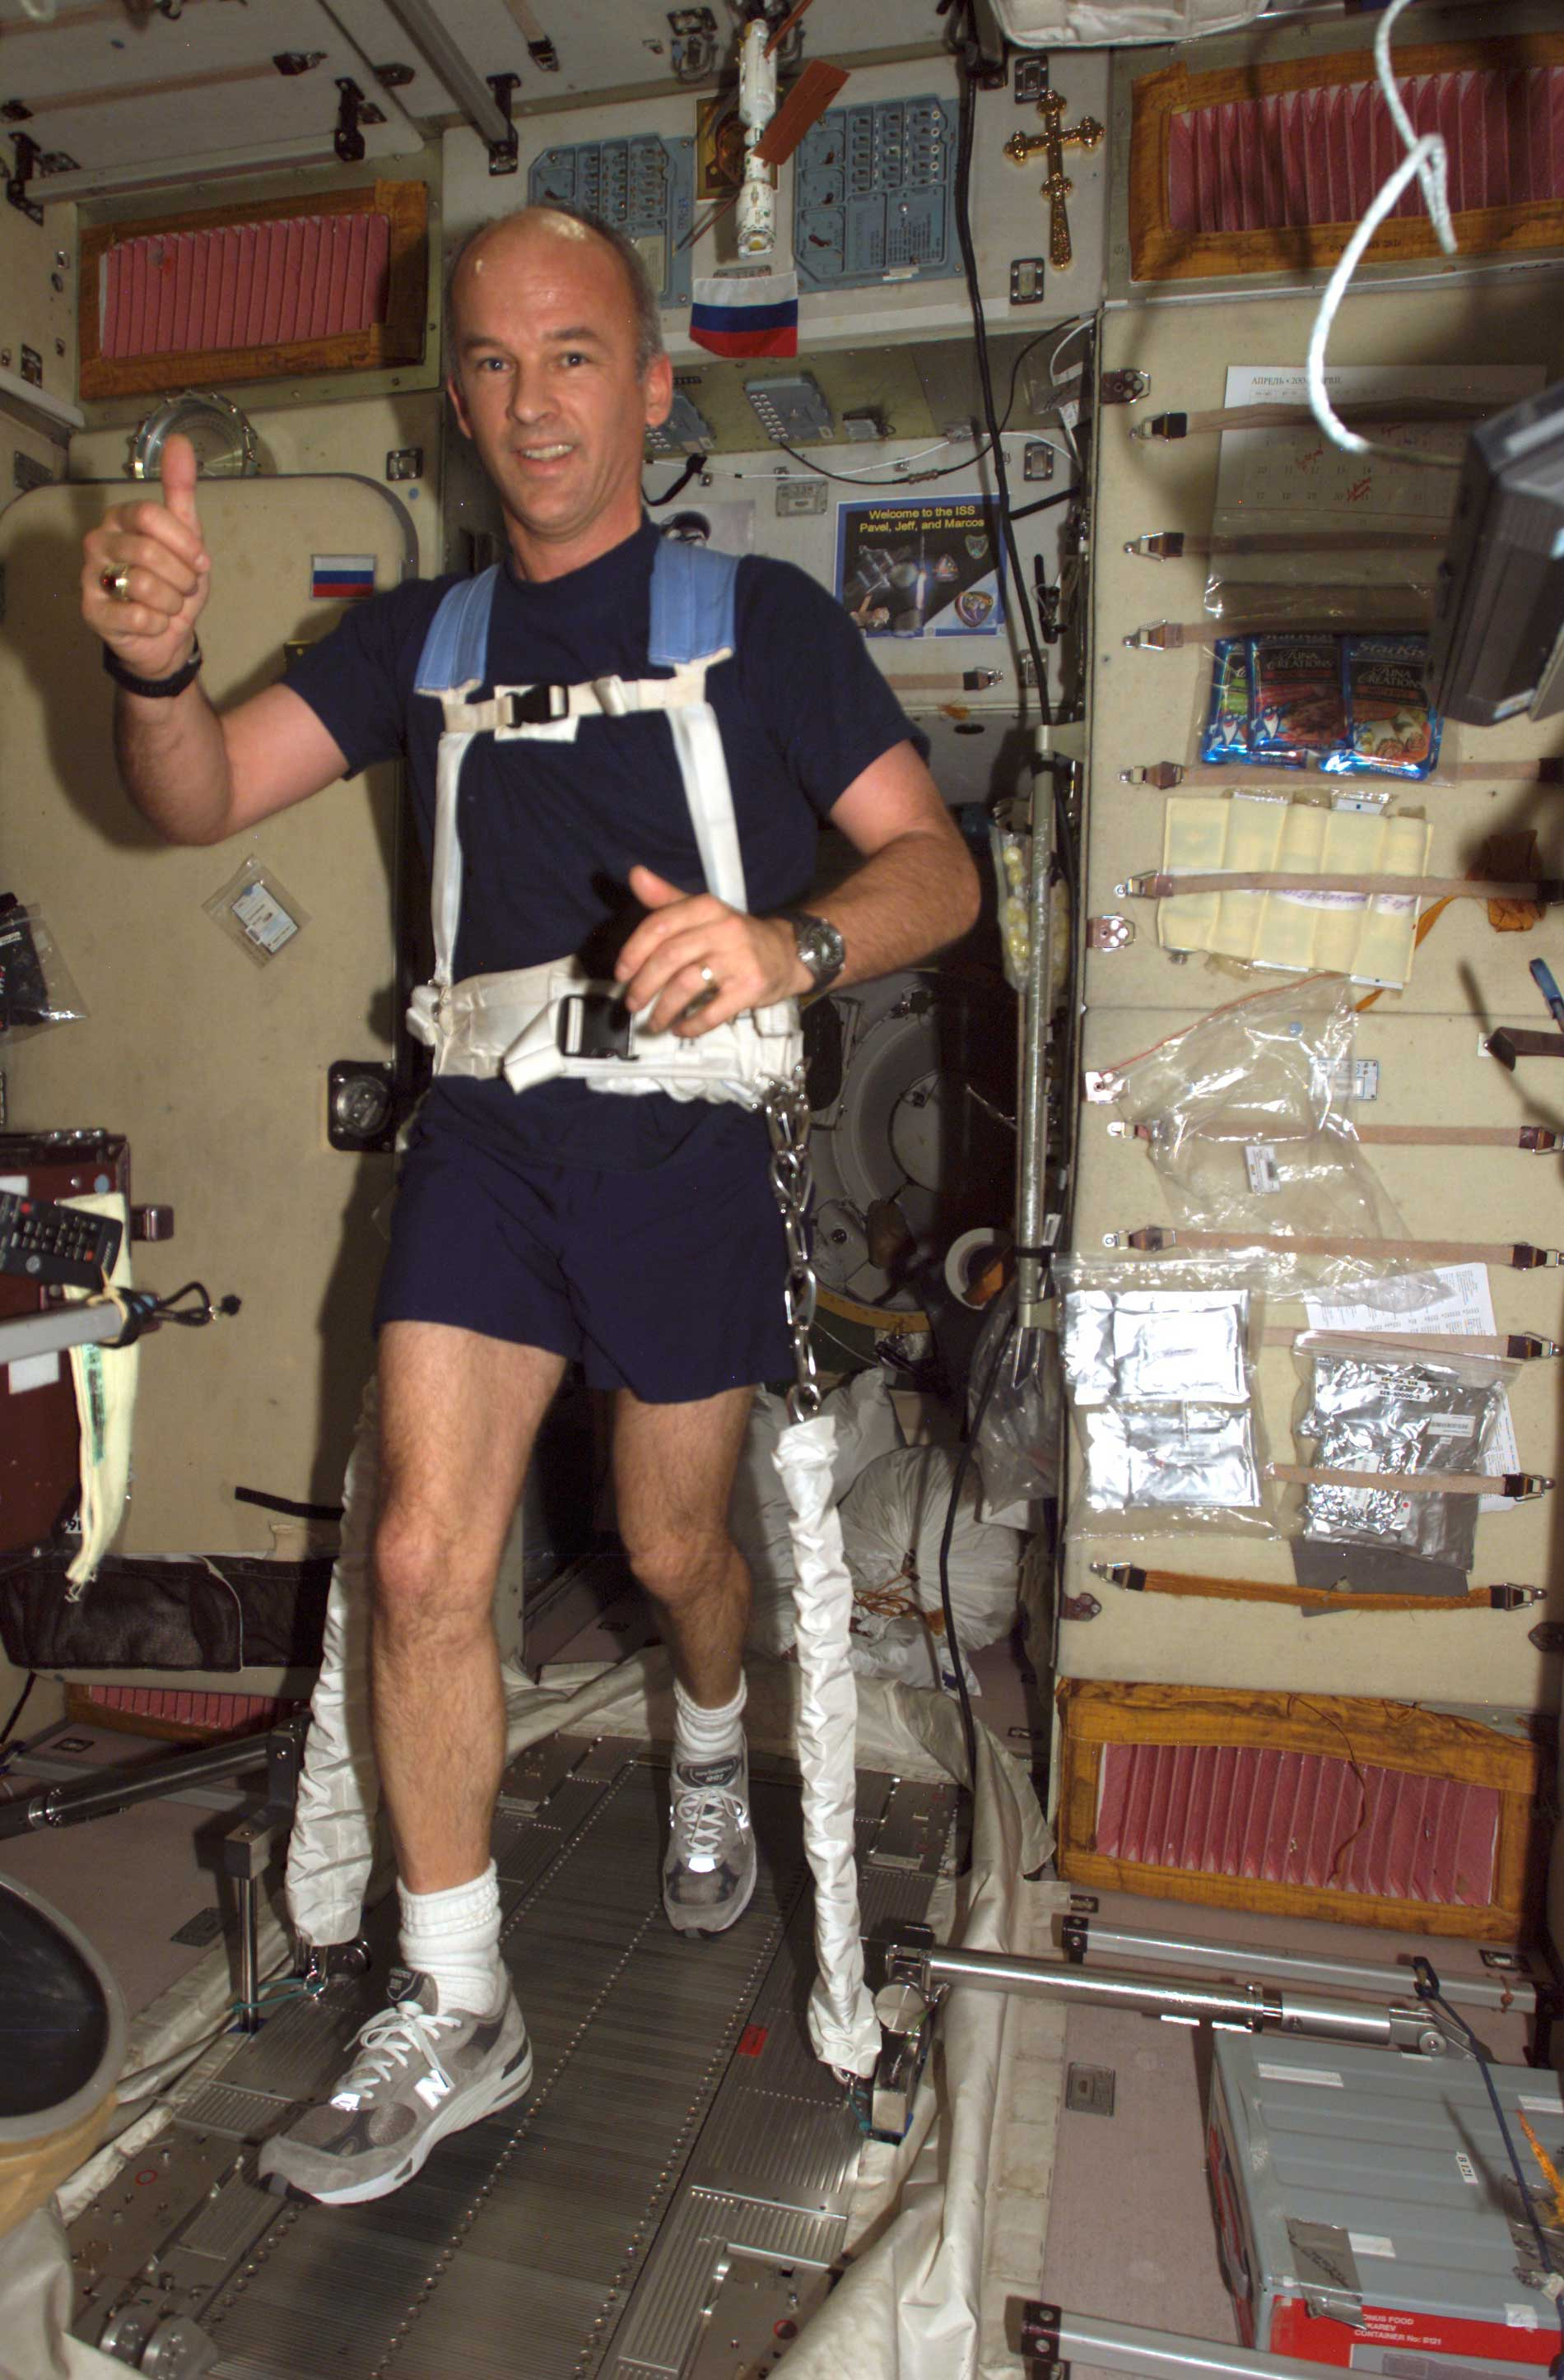 how astronauts exercise in space - photo #11